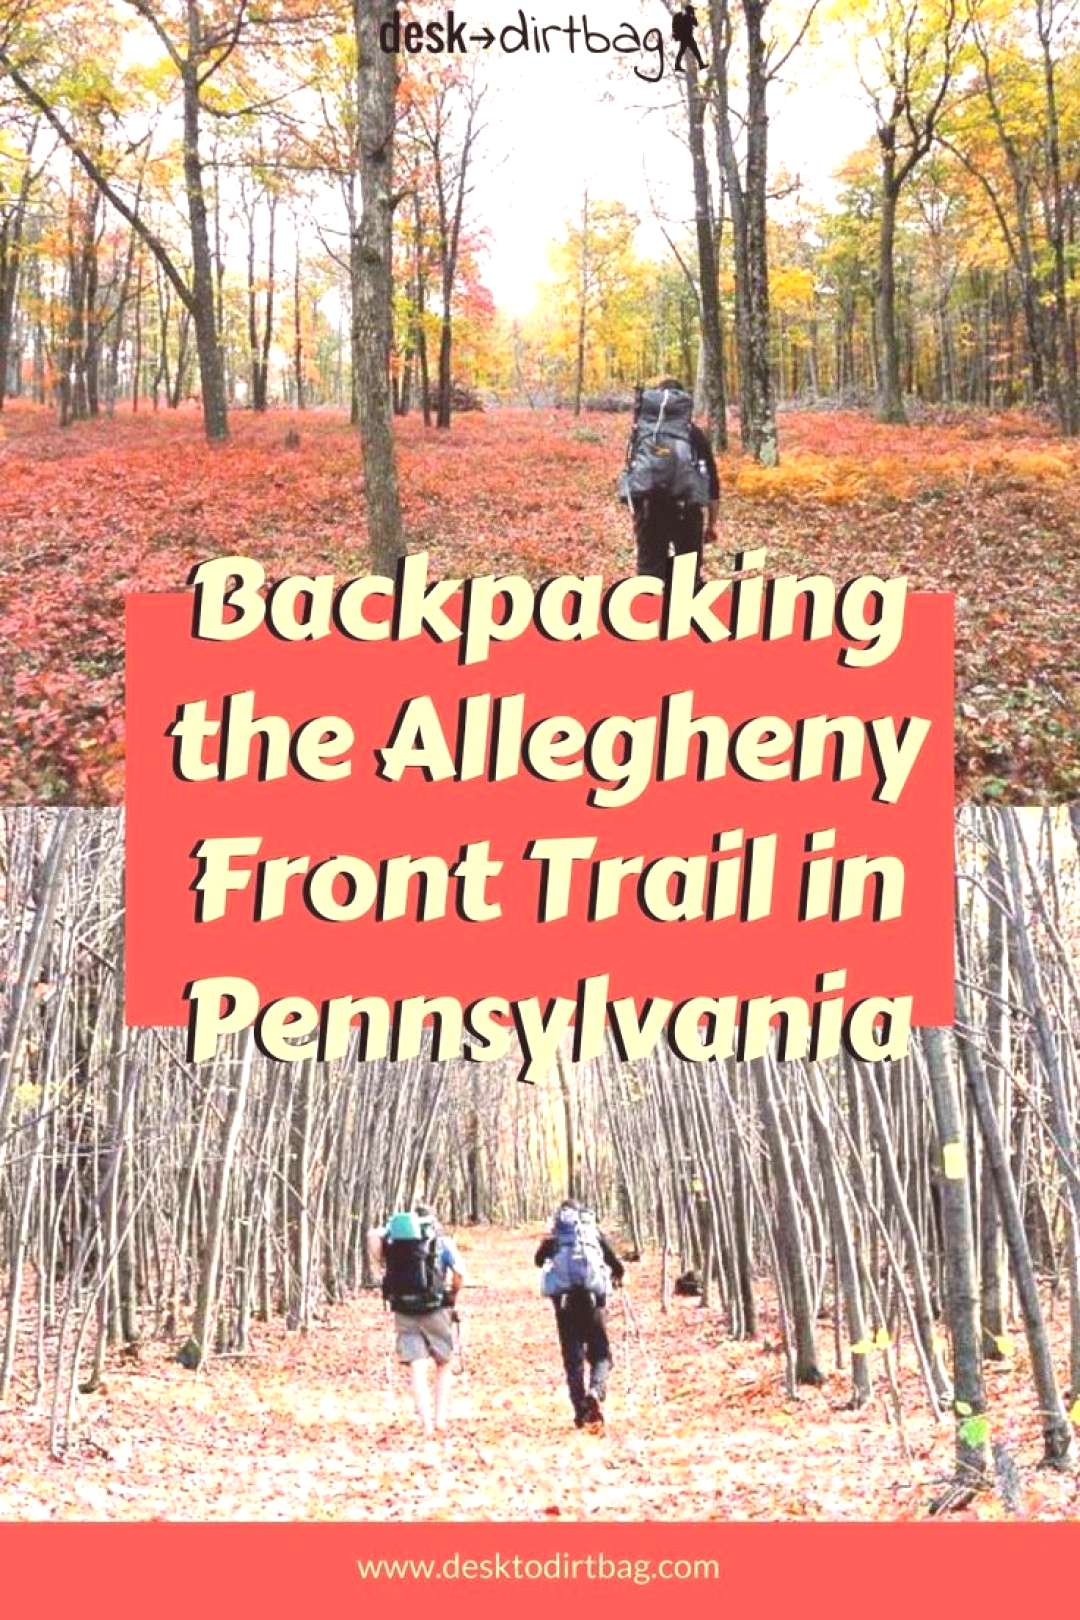 Backpacking the Allegheny Front Trail in Pennsylvania (42 miles) Backpacking the Allegheny Front Tr